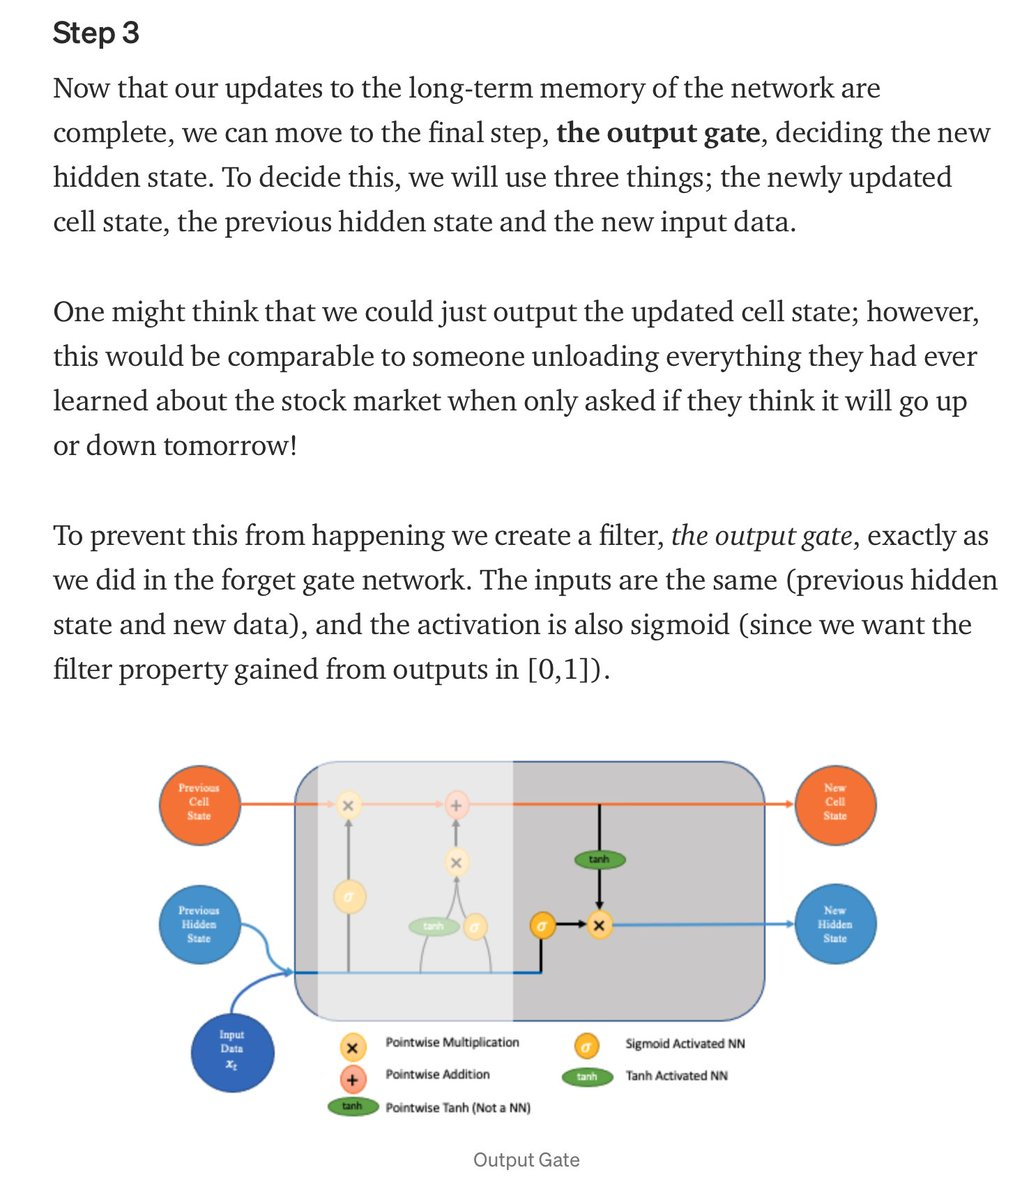 #LSTM #Networks: Detailed Explanation🌐📡 ⬇️ https://t.co/xBAcv4Sa8E Via @gp_pulipaka   #BigData #Analytics #DataScience #AI #MachineLearning #ML #IoT #IIoT #IoTPL #Python #RStats #TensorFlow #GoLang #CloudComputing #Serverless #DataScientist #Programming #Coding #100DaysofCode